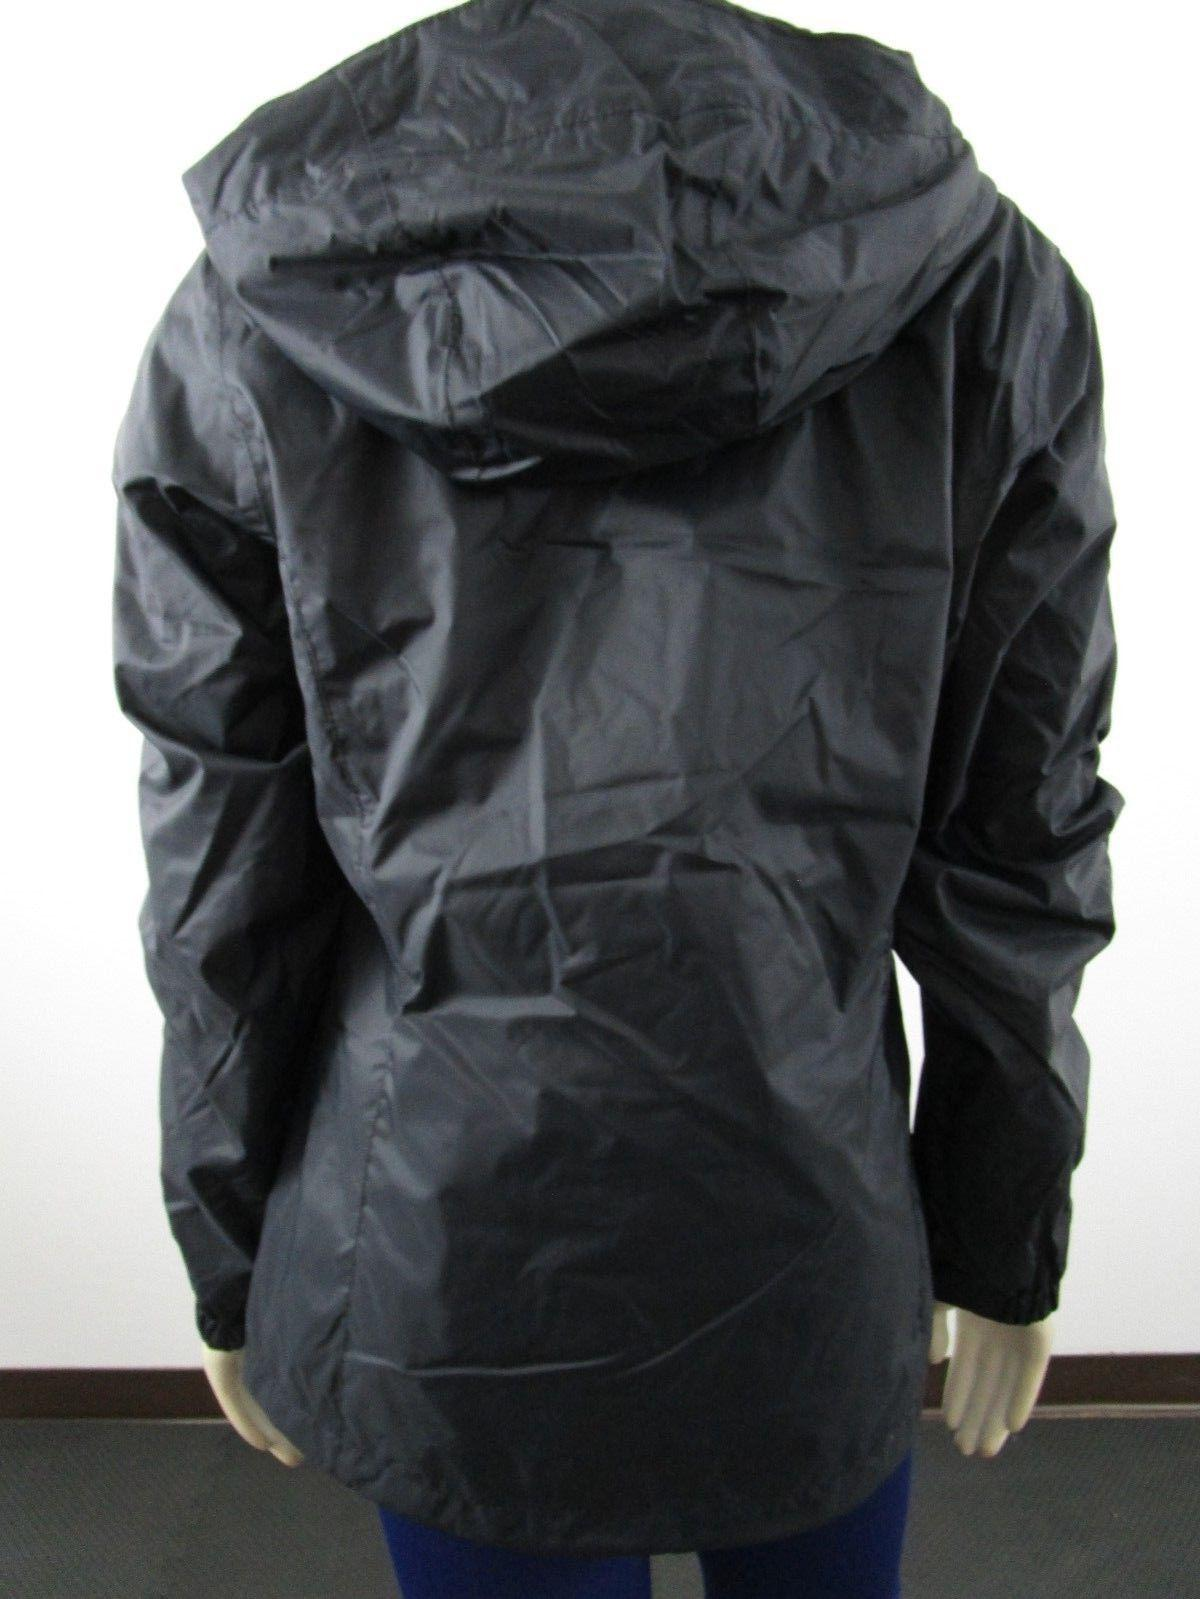 NWT Columbia Timber Pointe Packable Waterproof Shell Jacket